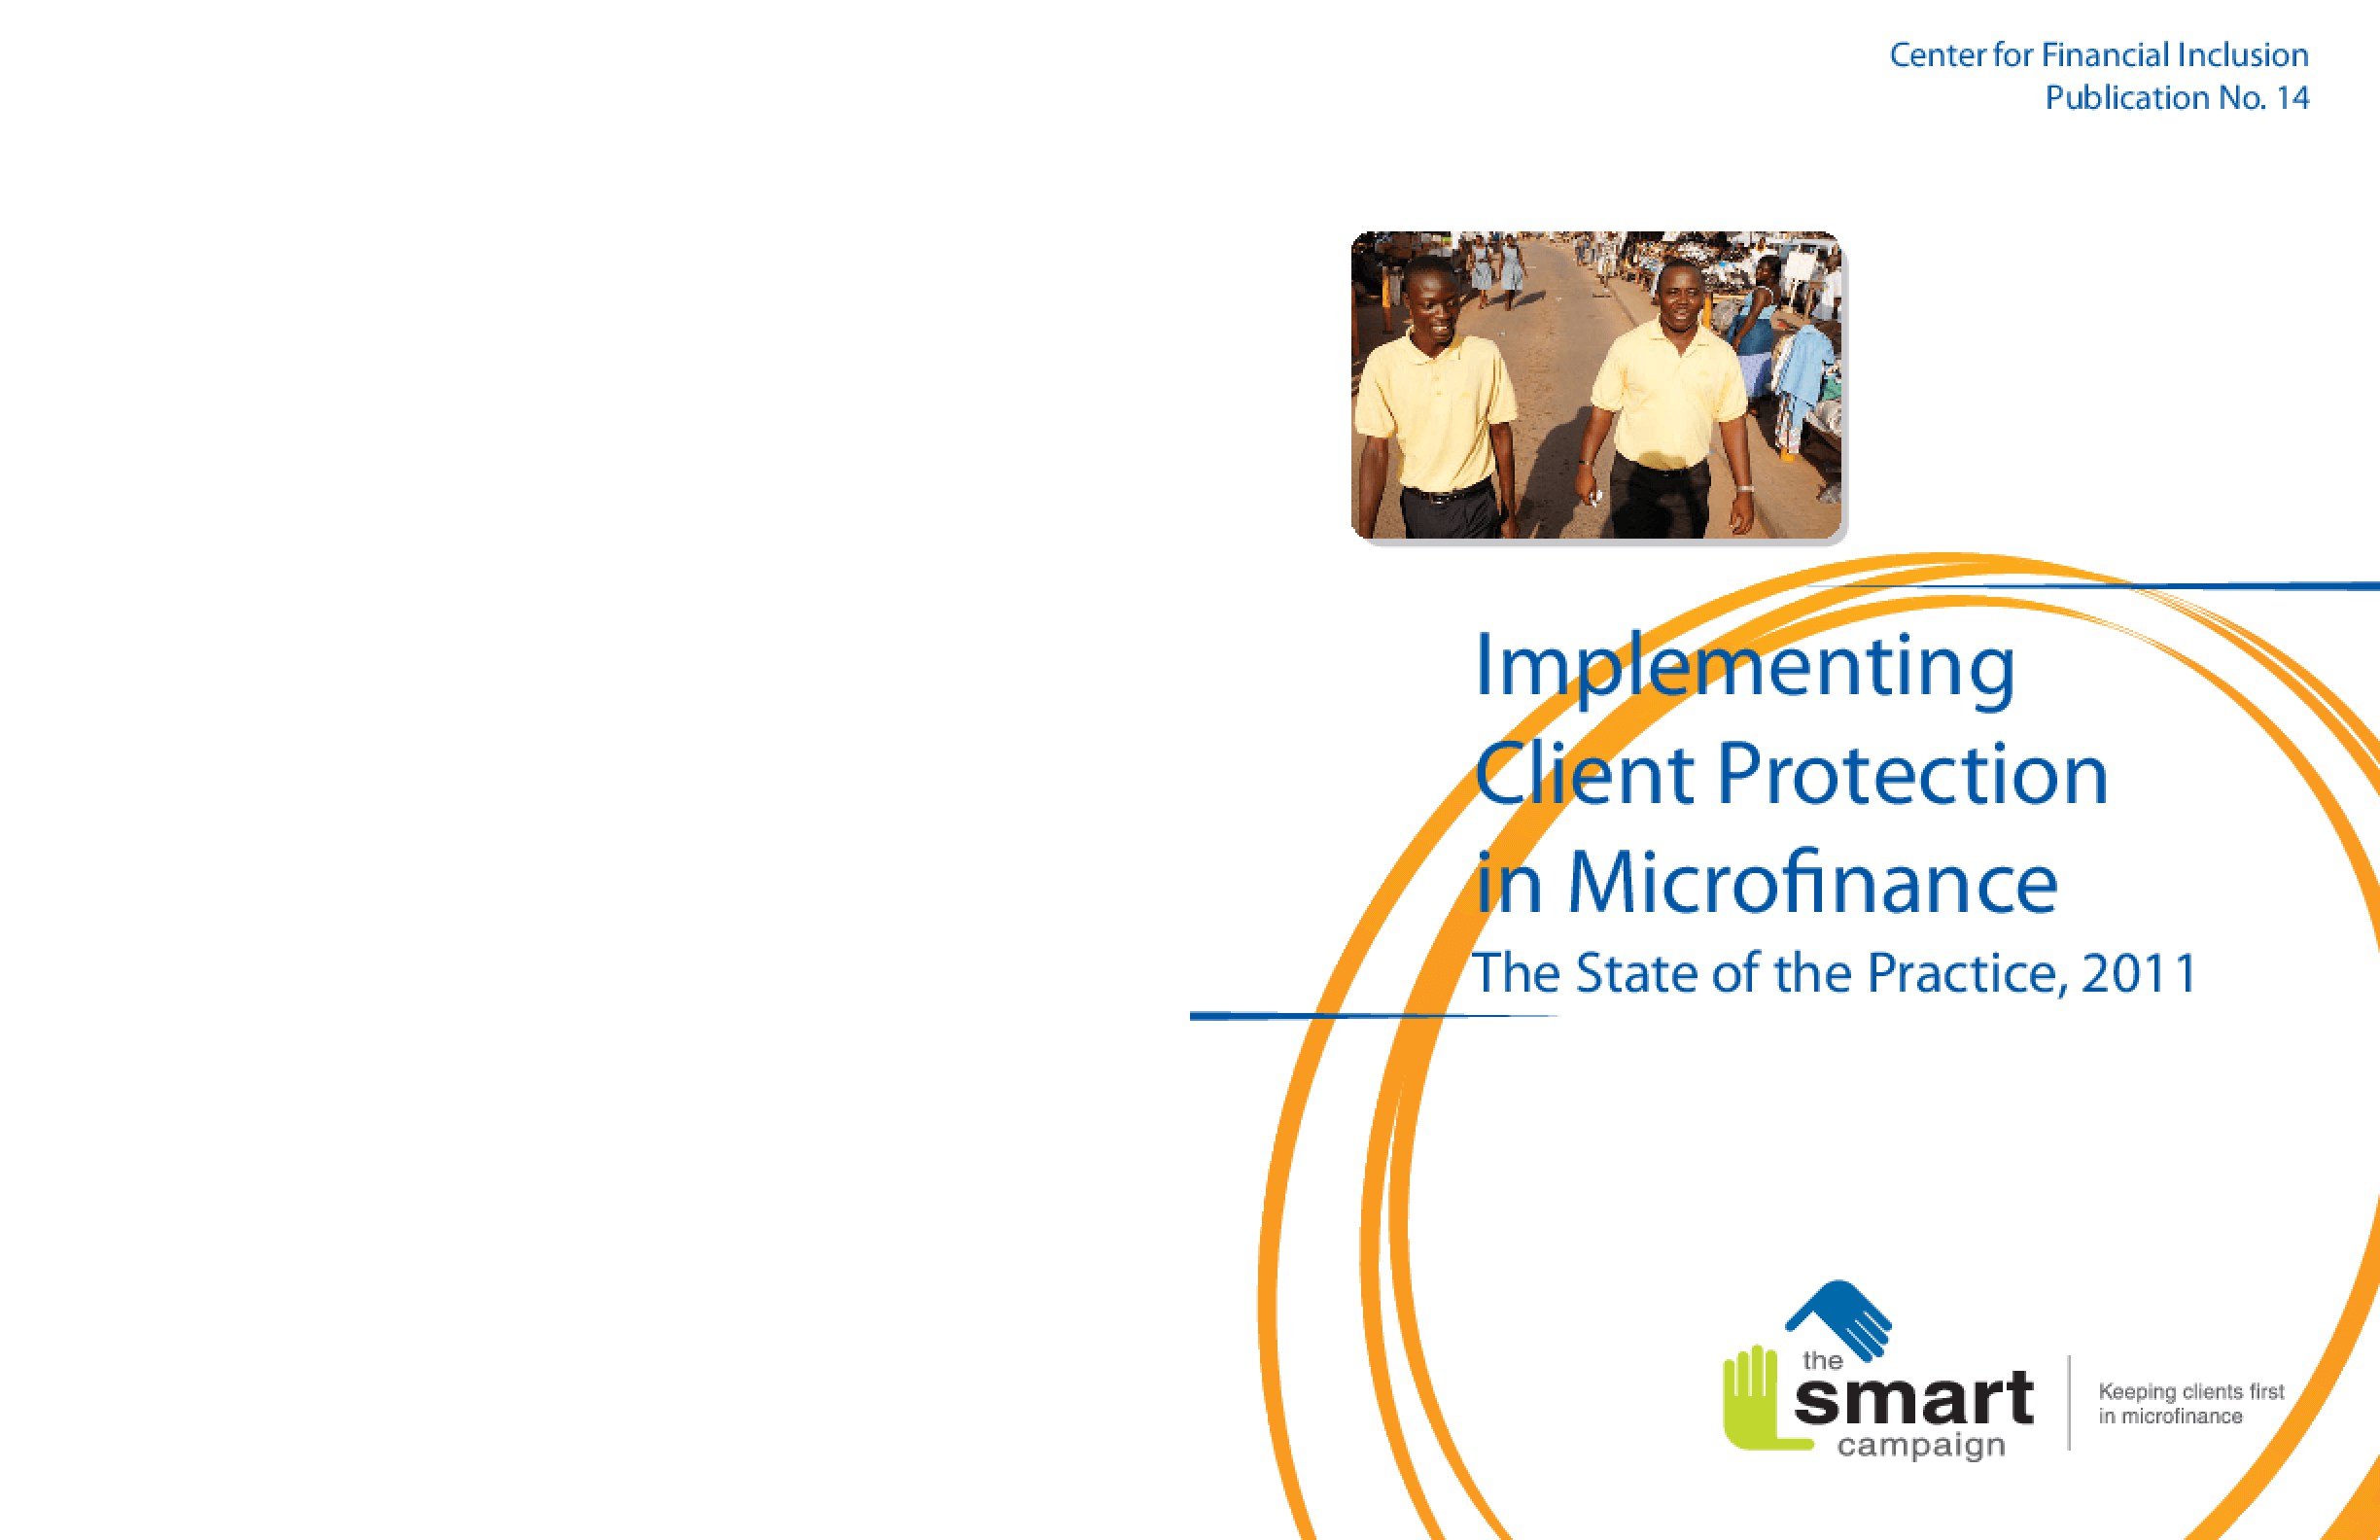 Implementing Client Protection in Microfinance: The State of the Practice, 2011